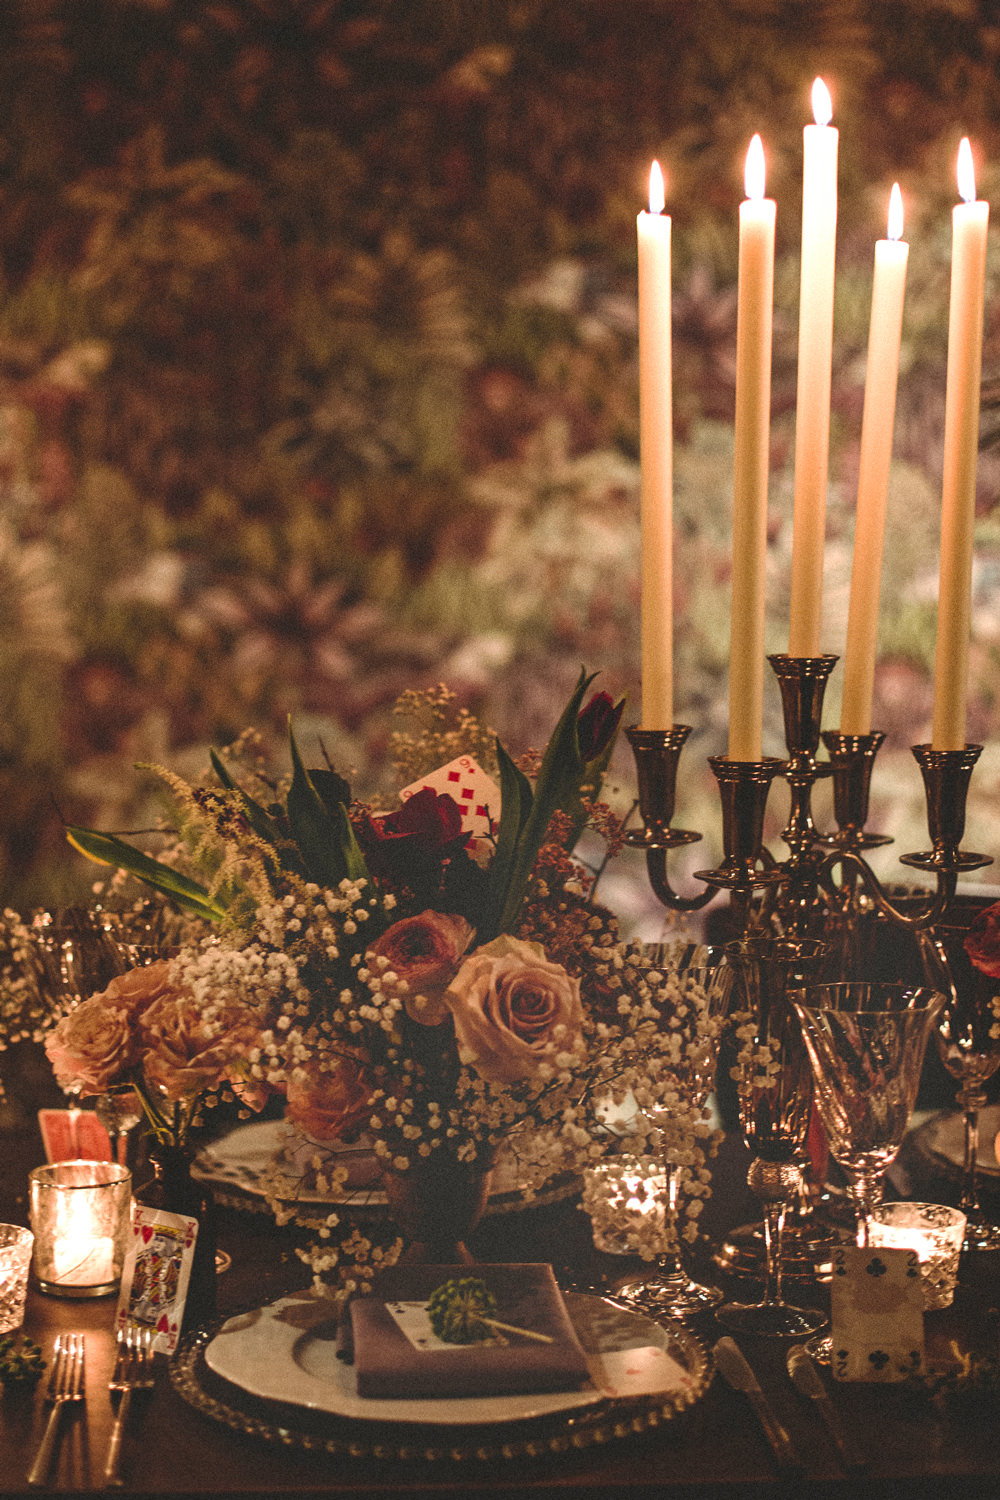 Table Tablescape Candles Candlestick Flowers Decor Whimsical Elegant Wedding Ideas Mandorla London